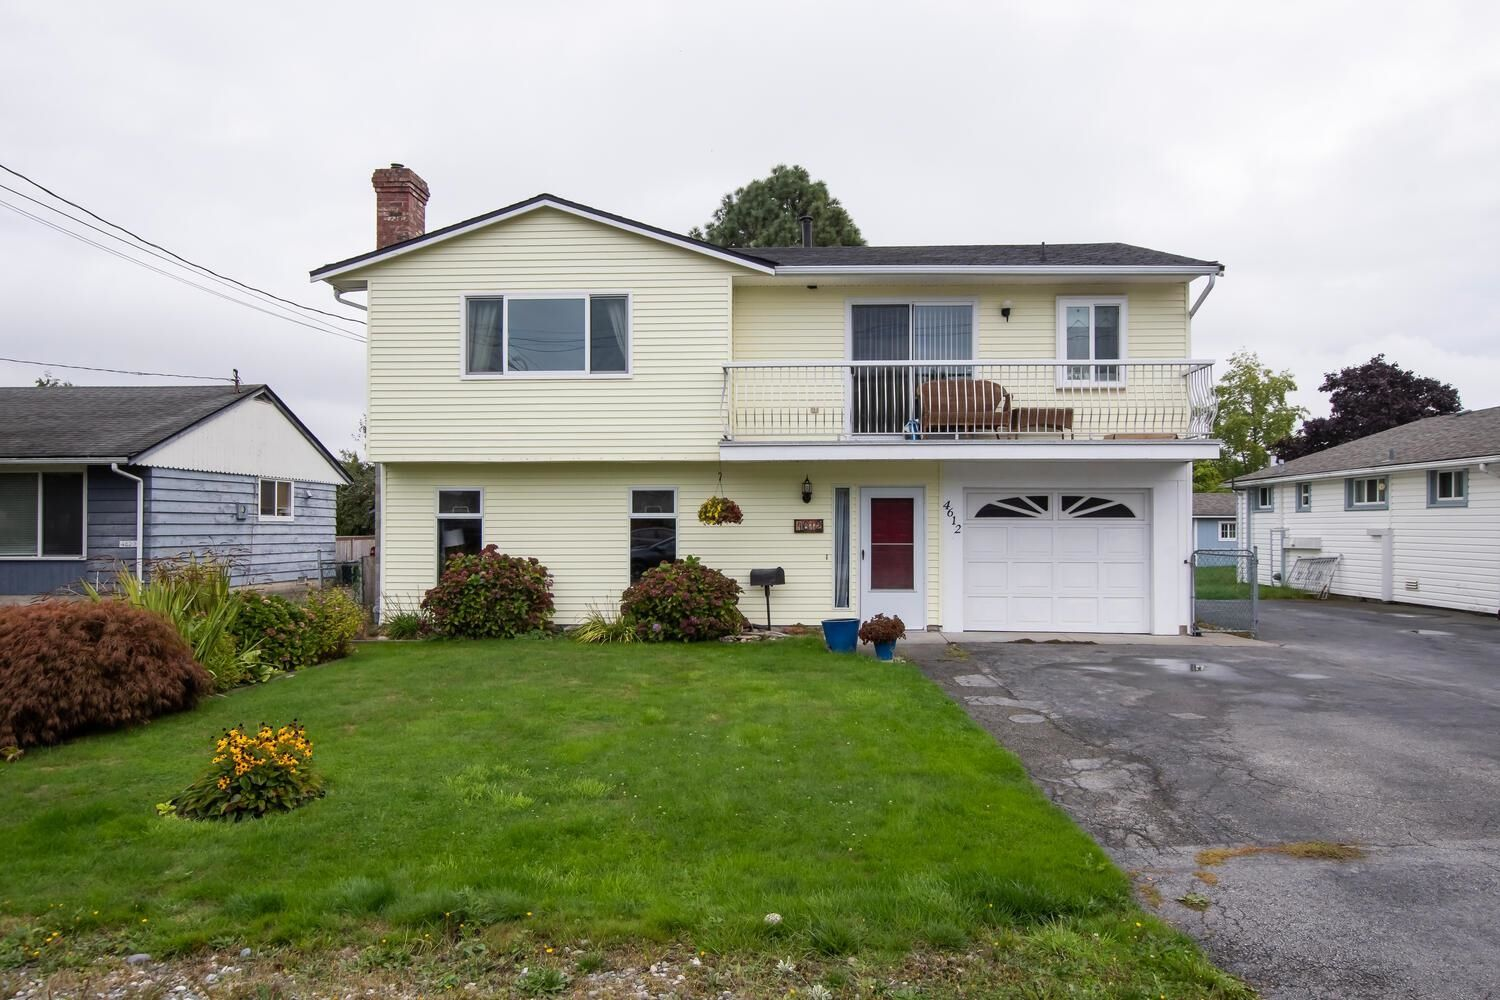 Main Photo: 4612 60B Street in Delta: Holly House for sale (Ladner)  : MLS®# R2620602